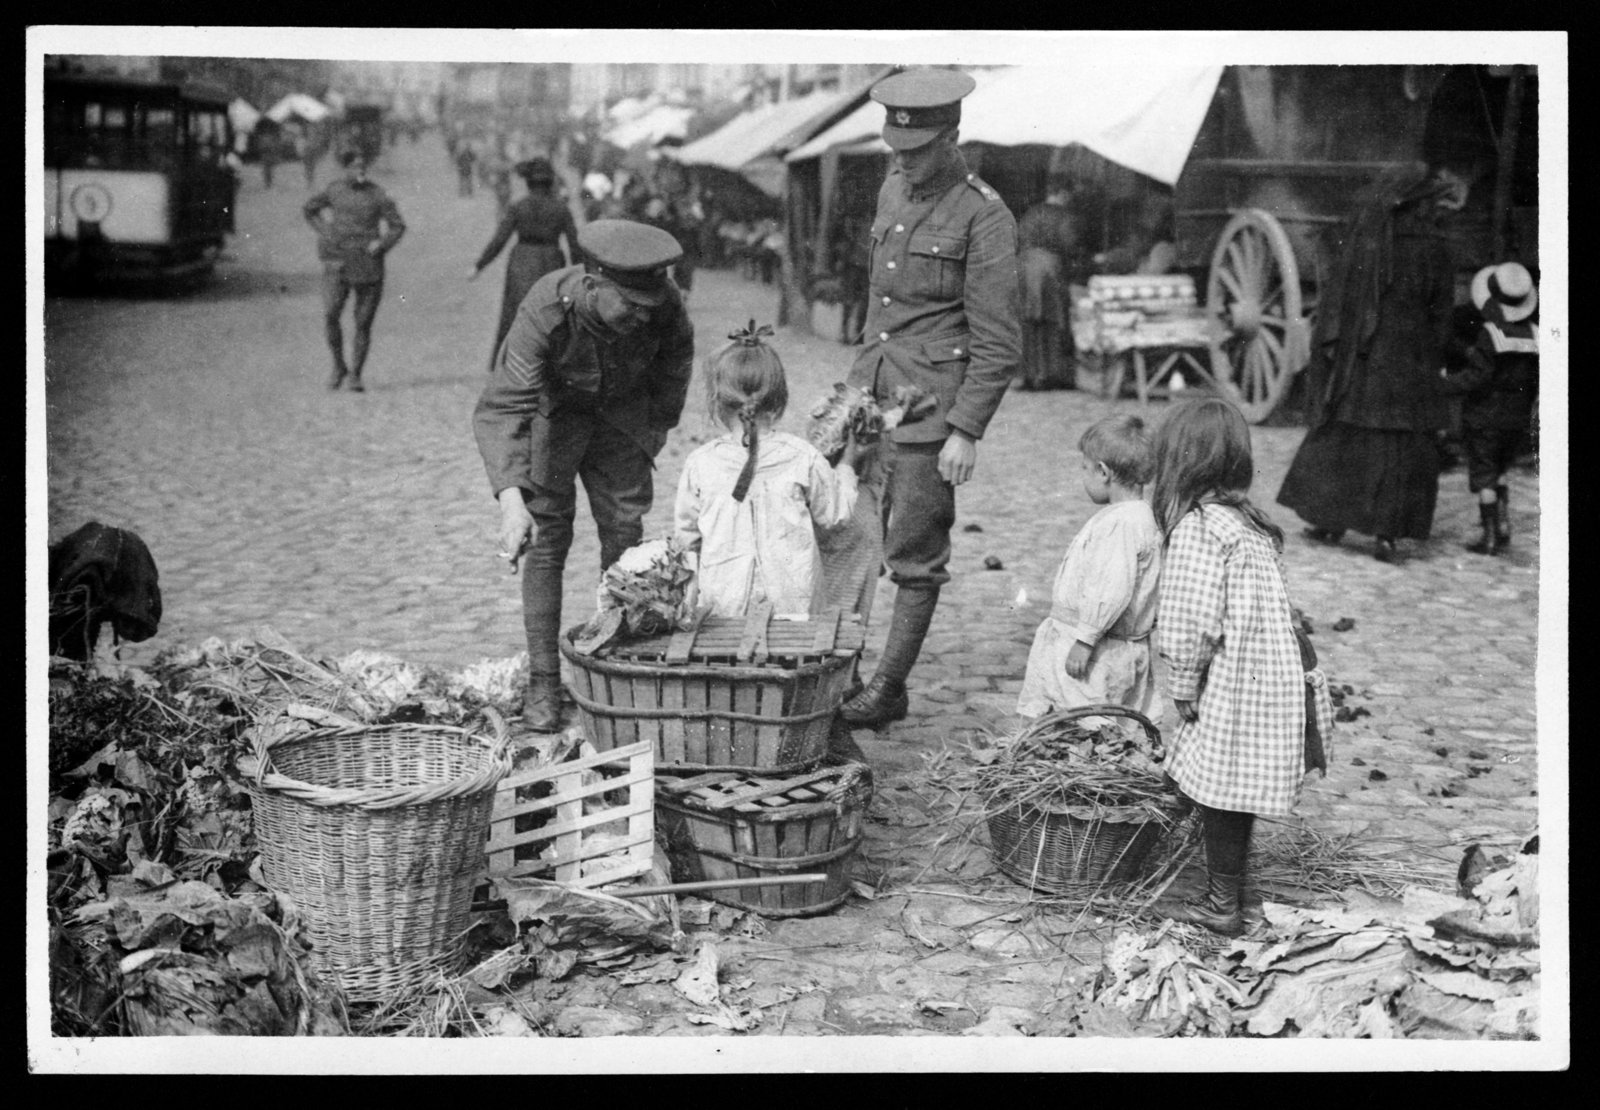 British Sergeant and a Guardsman shopping in Bailleul (France), 1914-1920, Photographer unknown, National Library of Scotland, CC BY-NC-SA